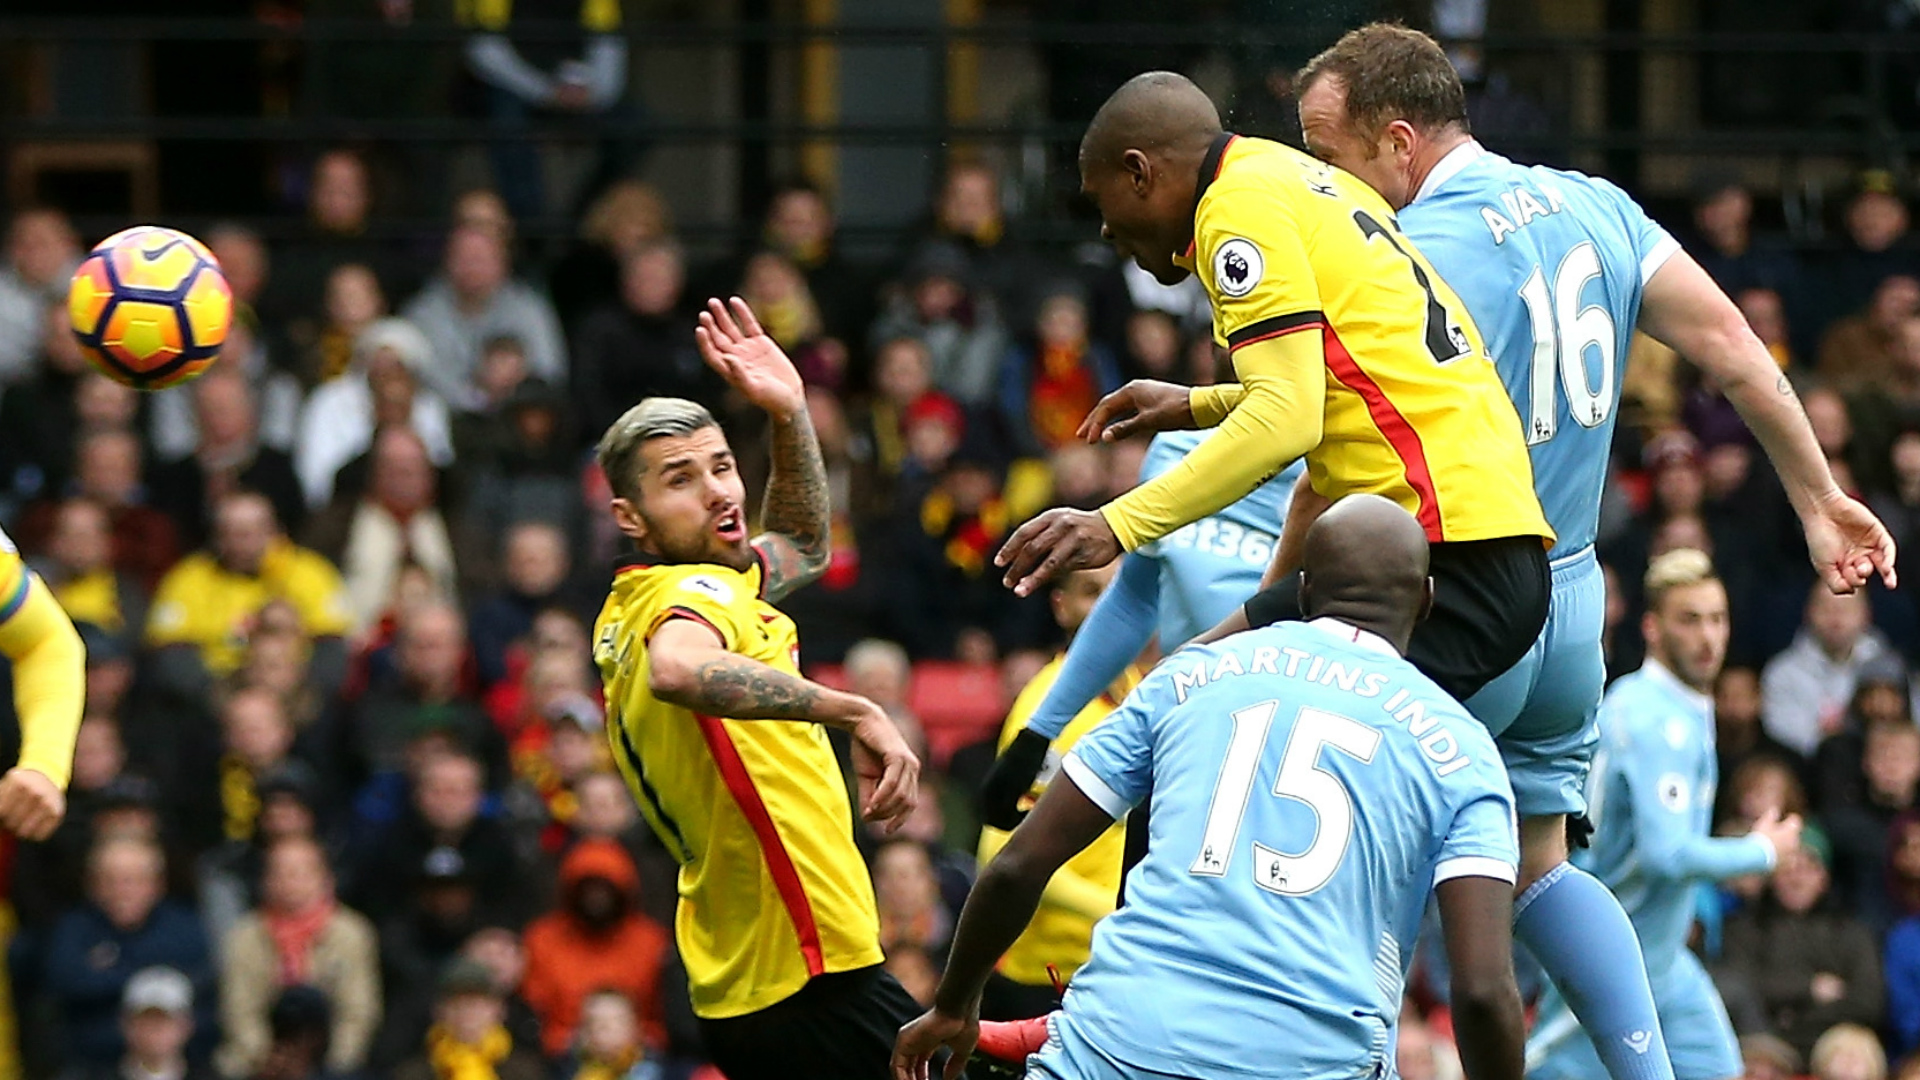 Gomes' own goal gives Stoke win at Watford in Premier League class=